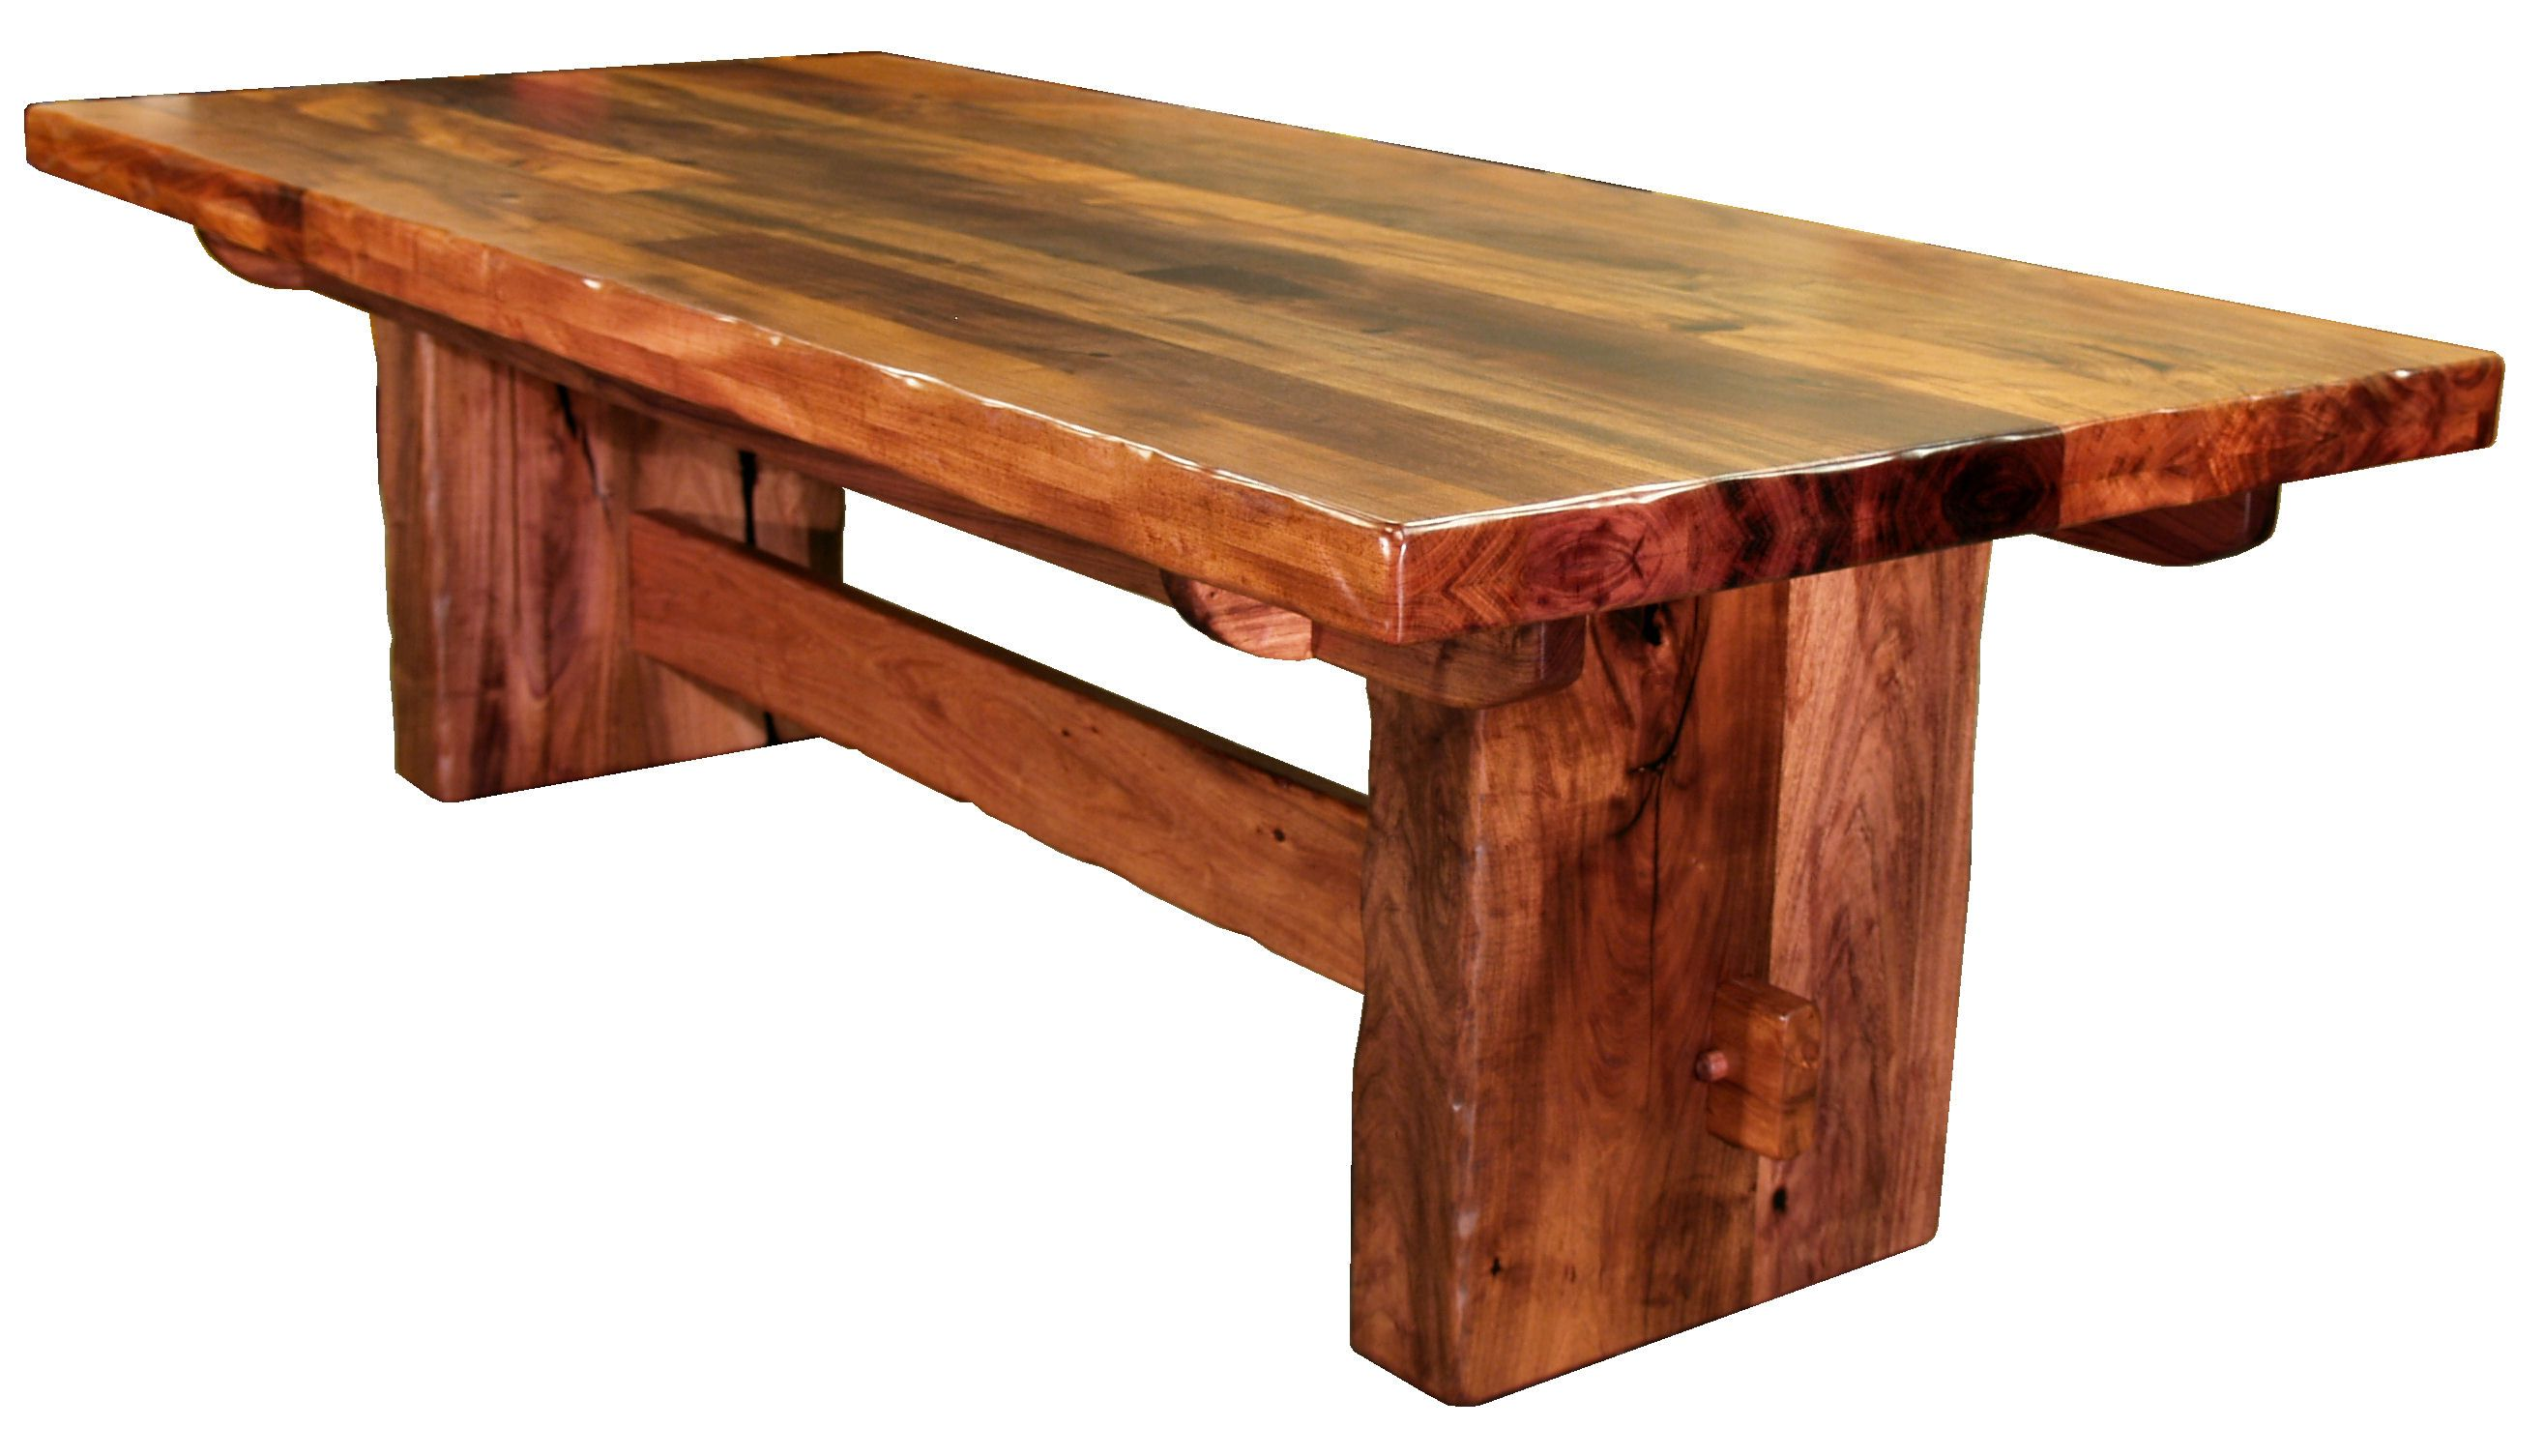 Mesquite Tables Made In Texas